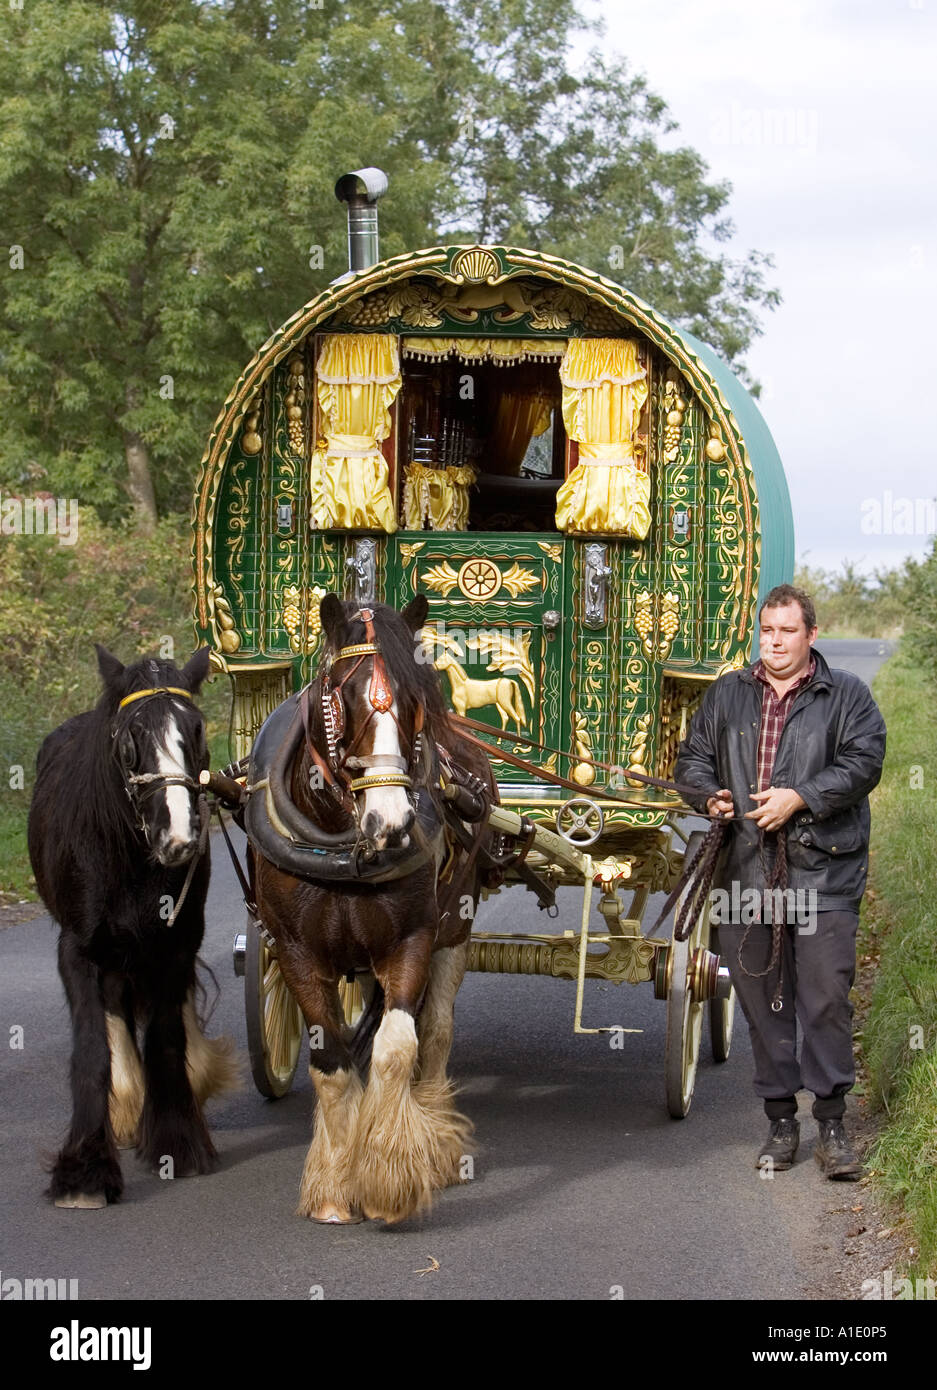 Shire horses pull 100 year old gypsy caravan through country lanes Stow On The Wold Gloucestershire United Kingdom - Stock Image